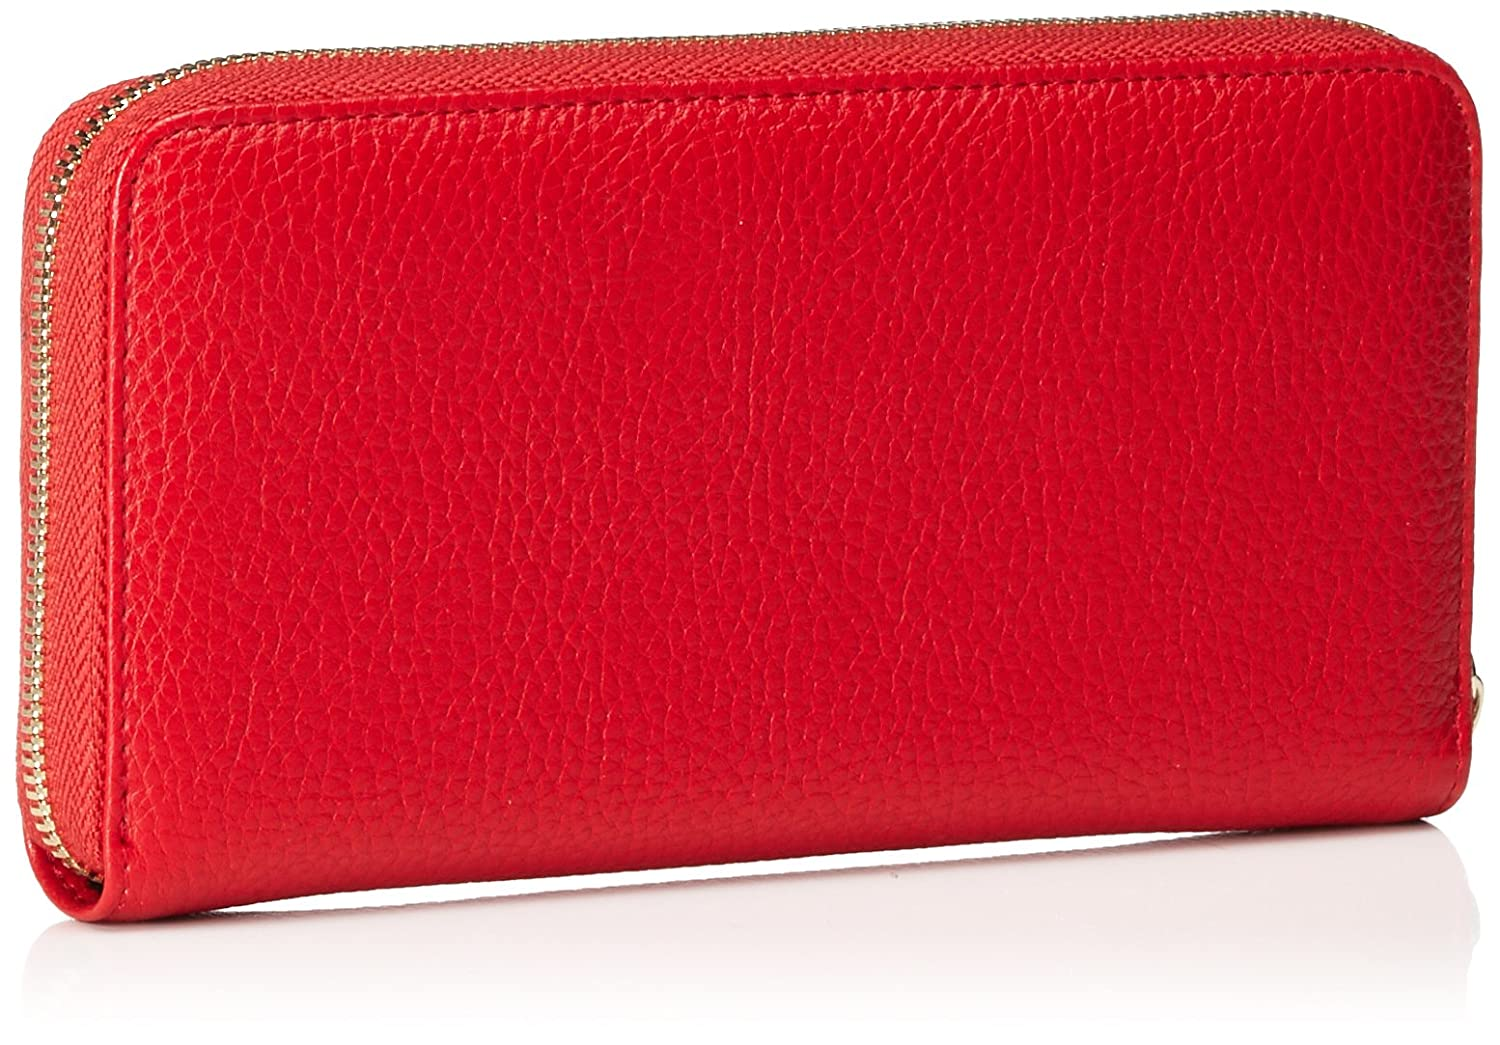 Lacroix Red 9i08 Christian y Mcl8796 Amazon rouge bolsos Wallet Zapatos es Women fIadqYwdn6